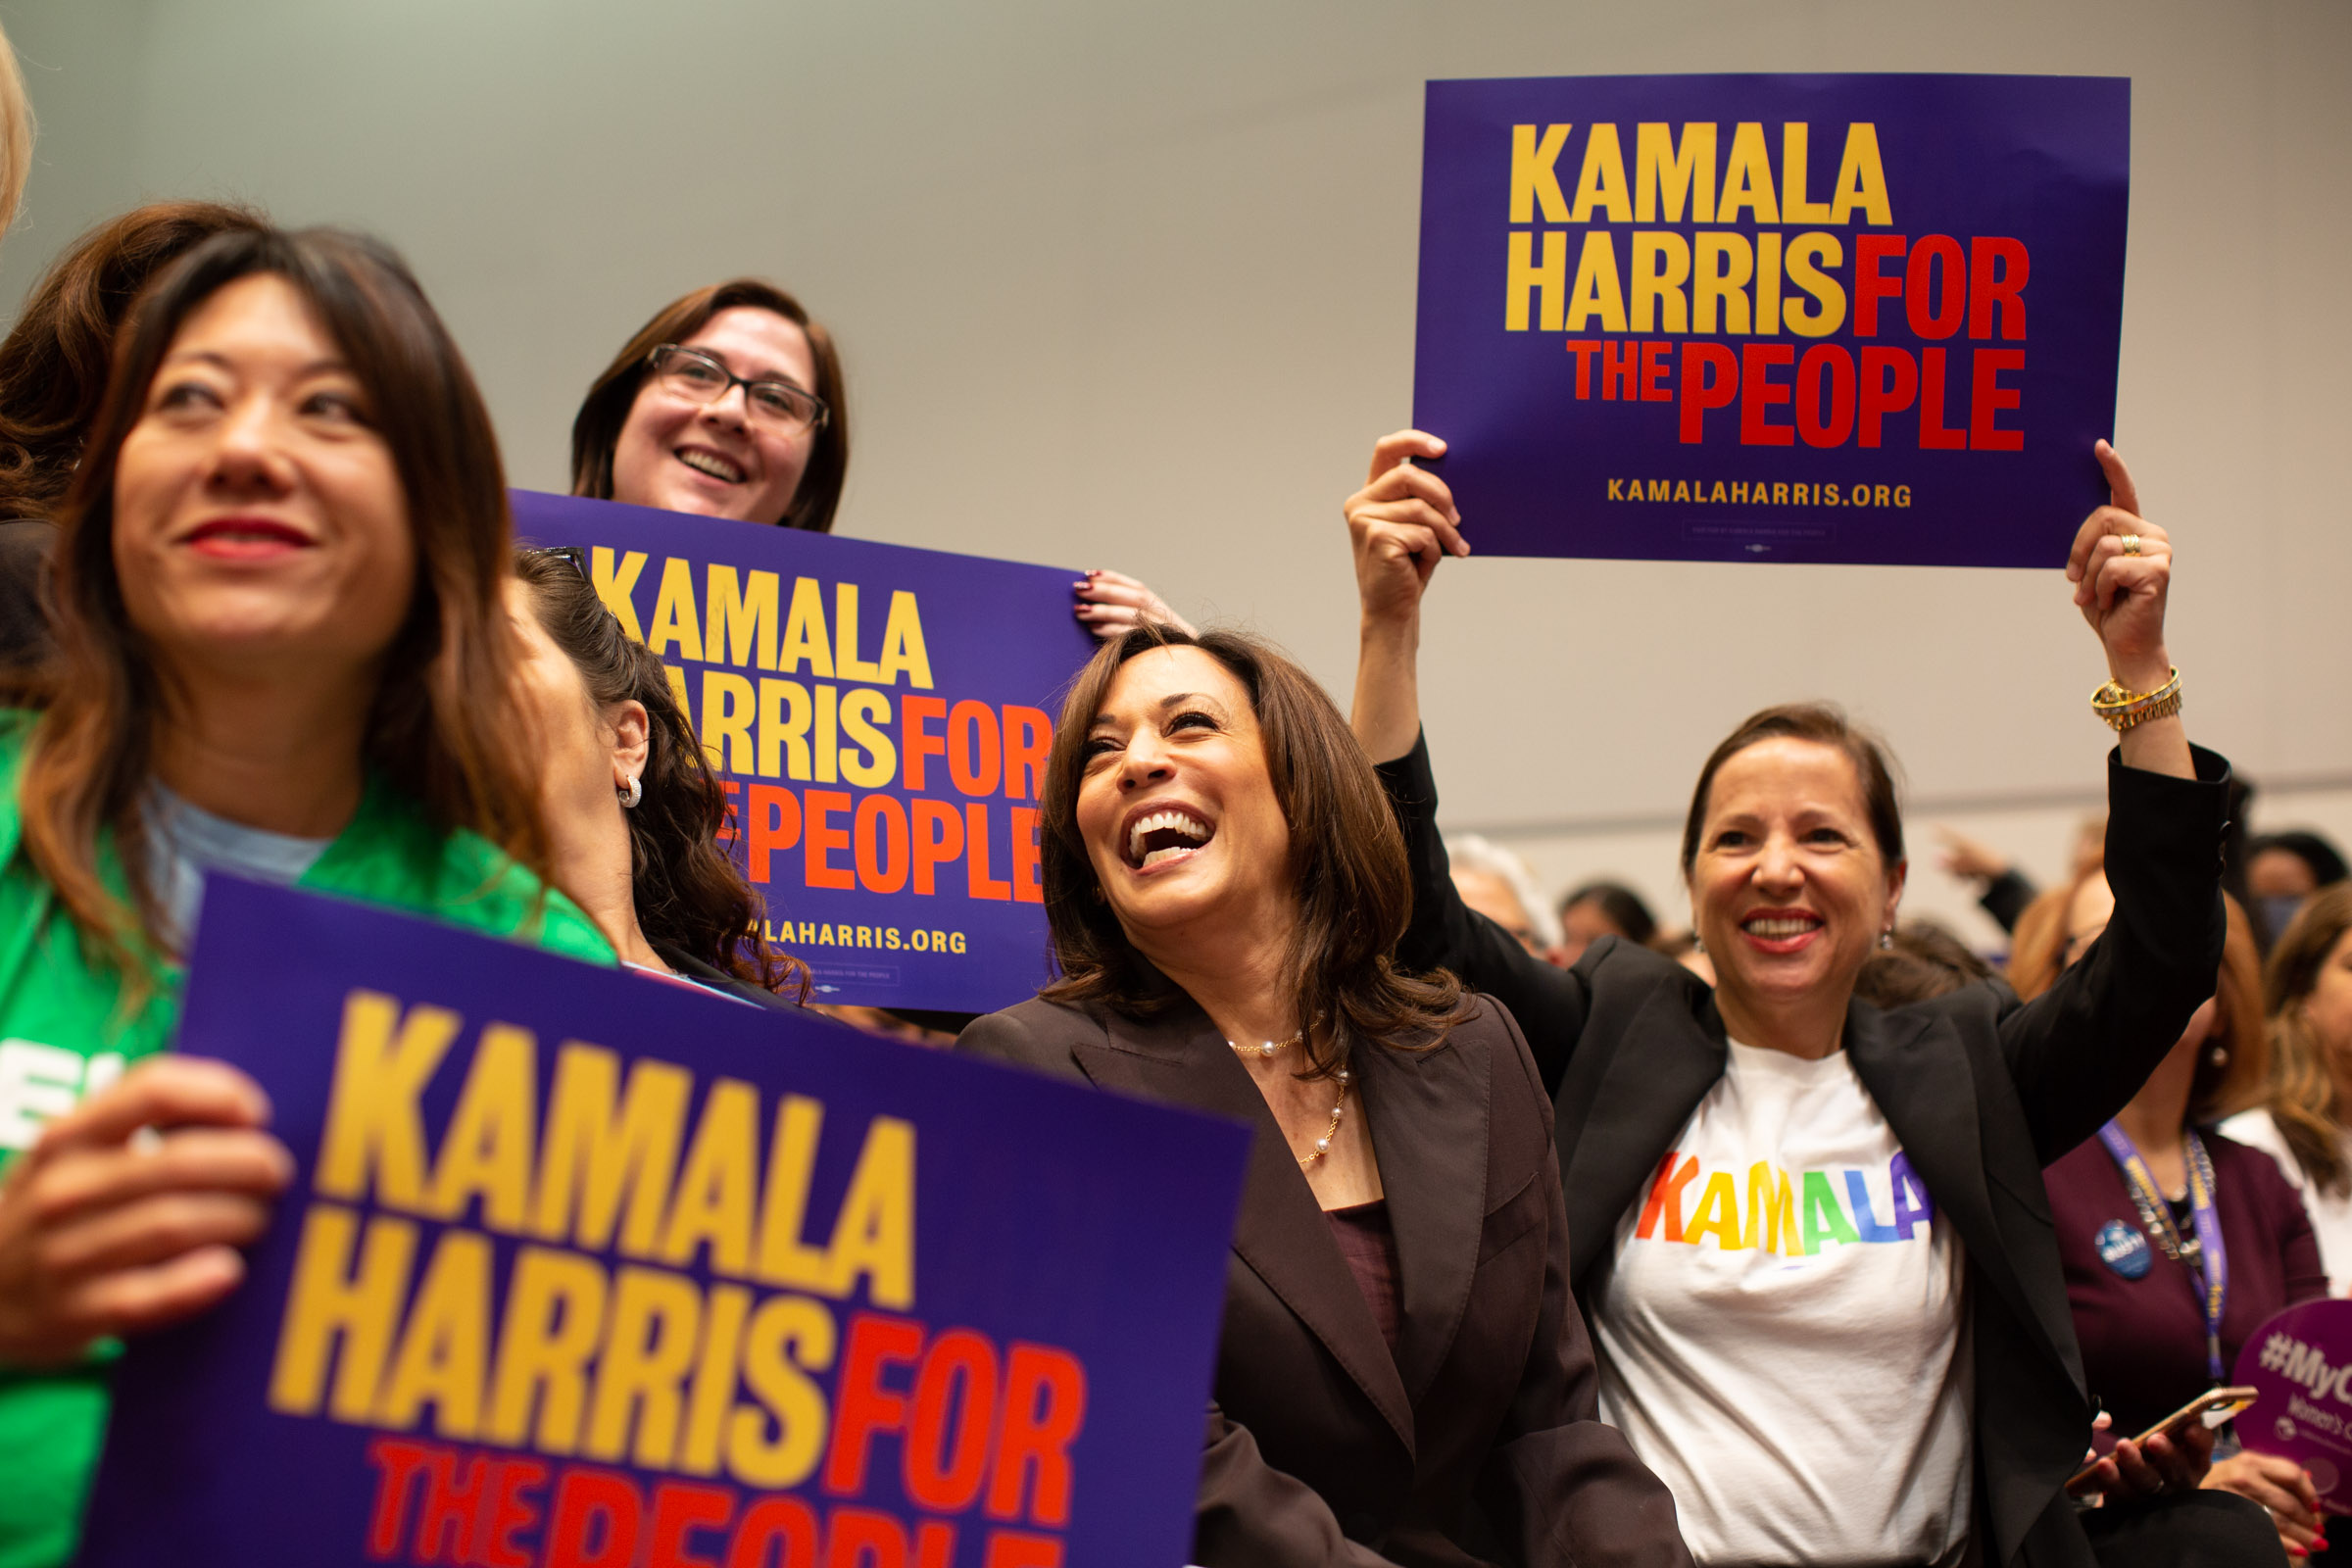 Senator Kamala Harris (center) and Calif. Lt. Governor Eleni Kounalakis (right) at Women's Caucus event June 1, 2019, at California Democratic Party convention at Moscone Center, San Francisco, CA. Photo by Tumay Aslay